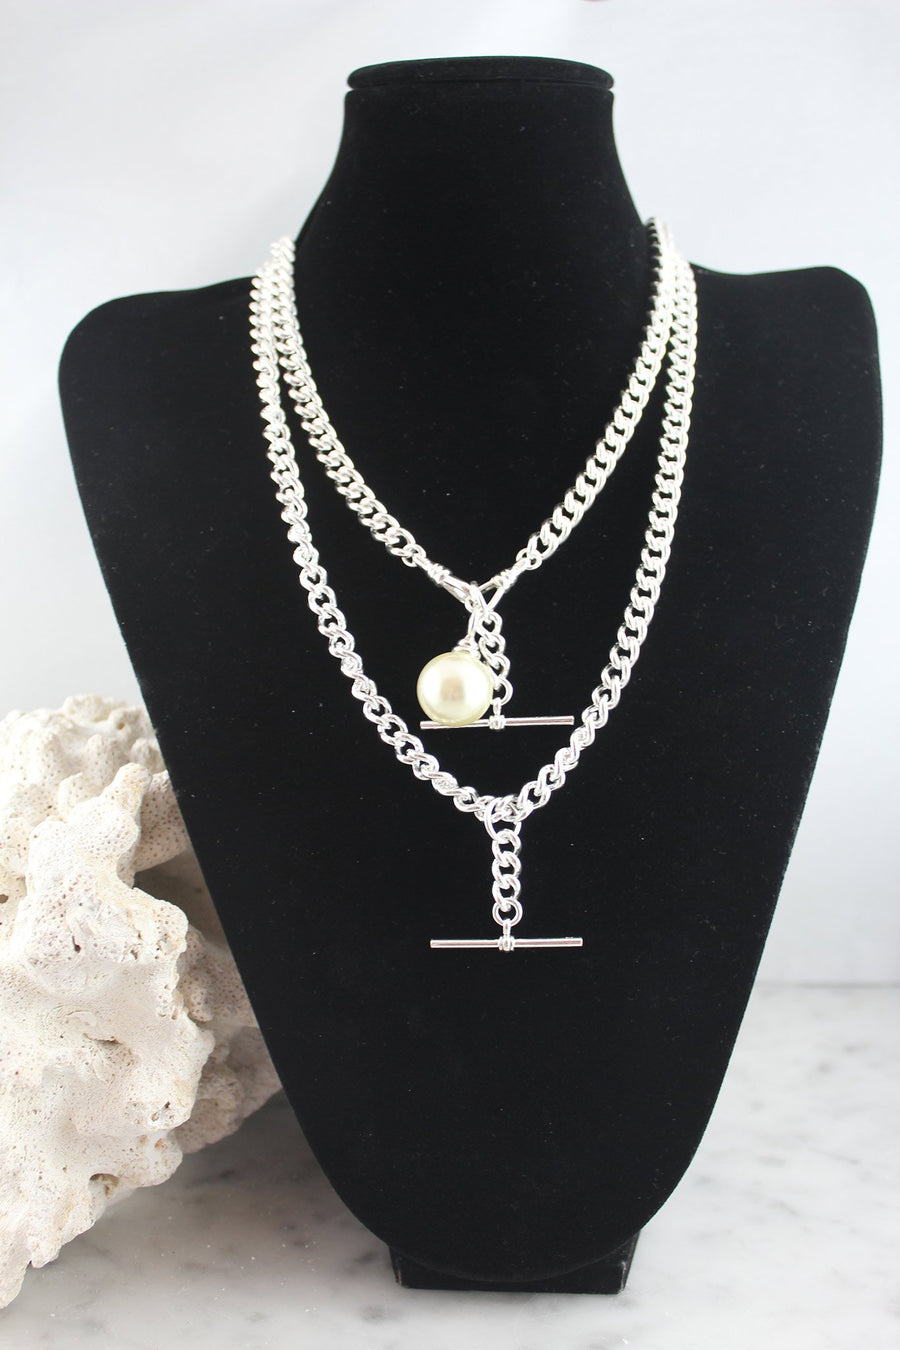 Sterling silver fob chains with pearl adornments